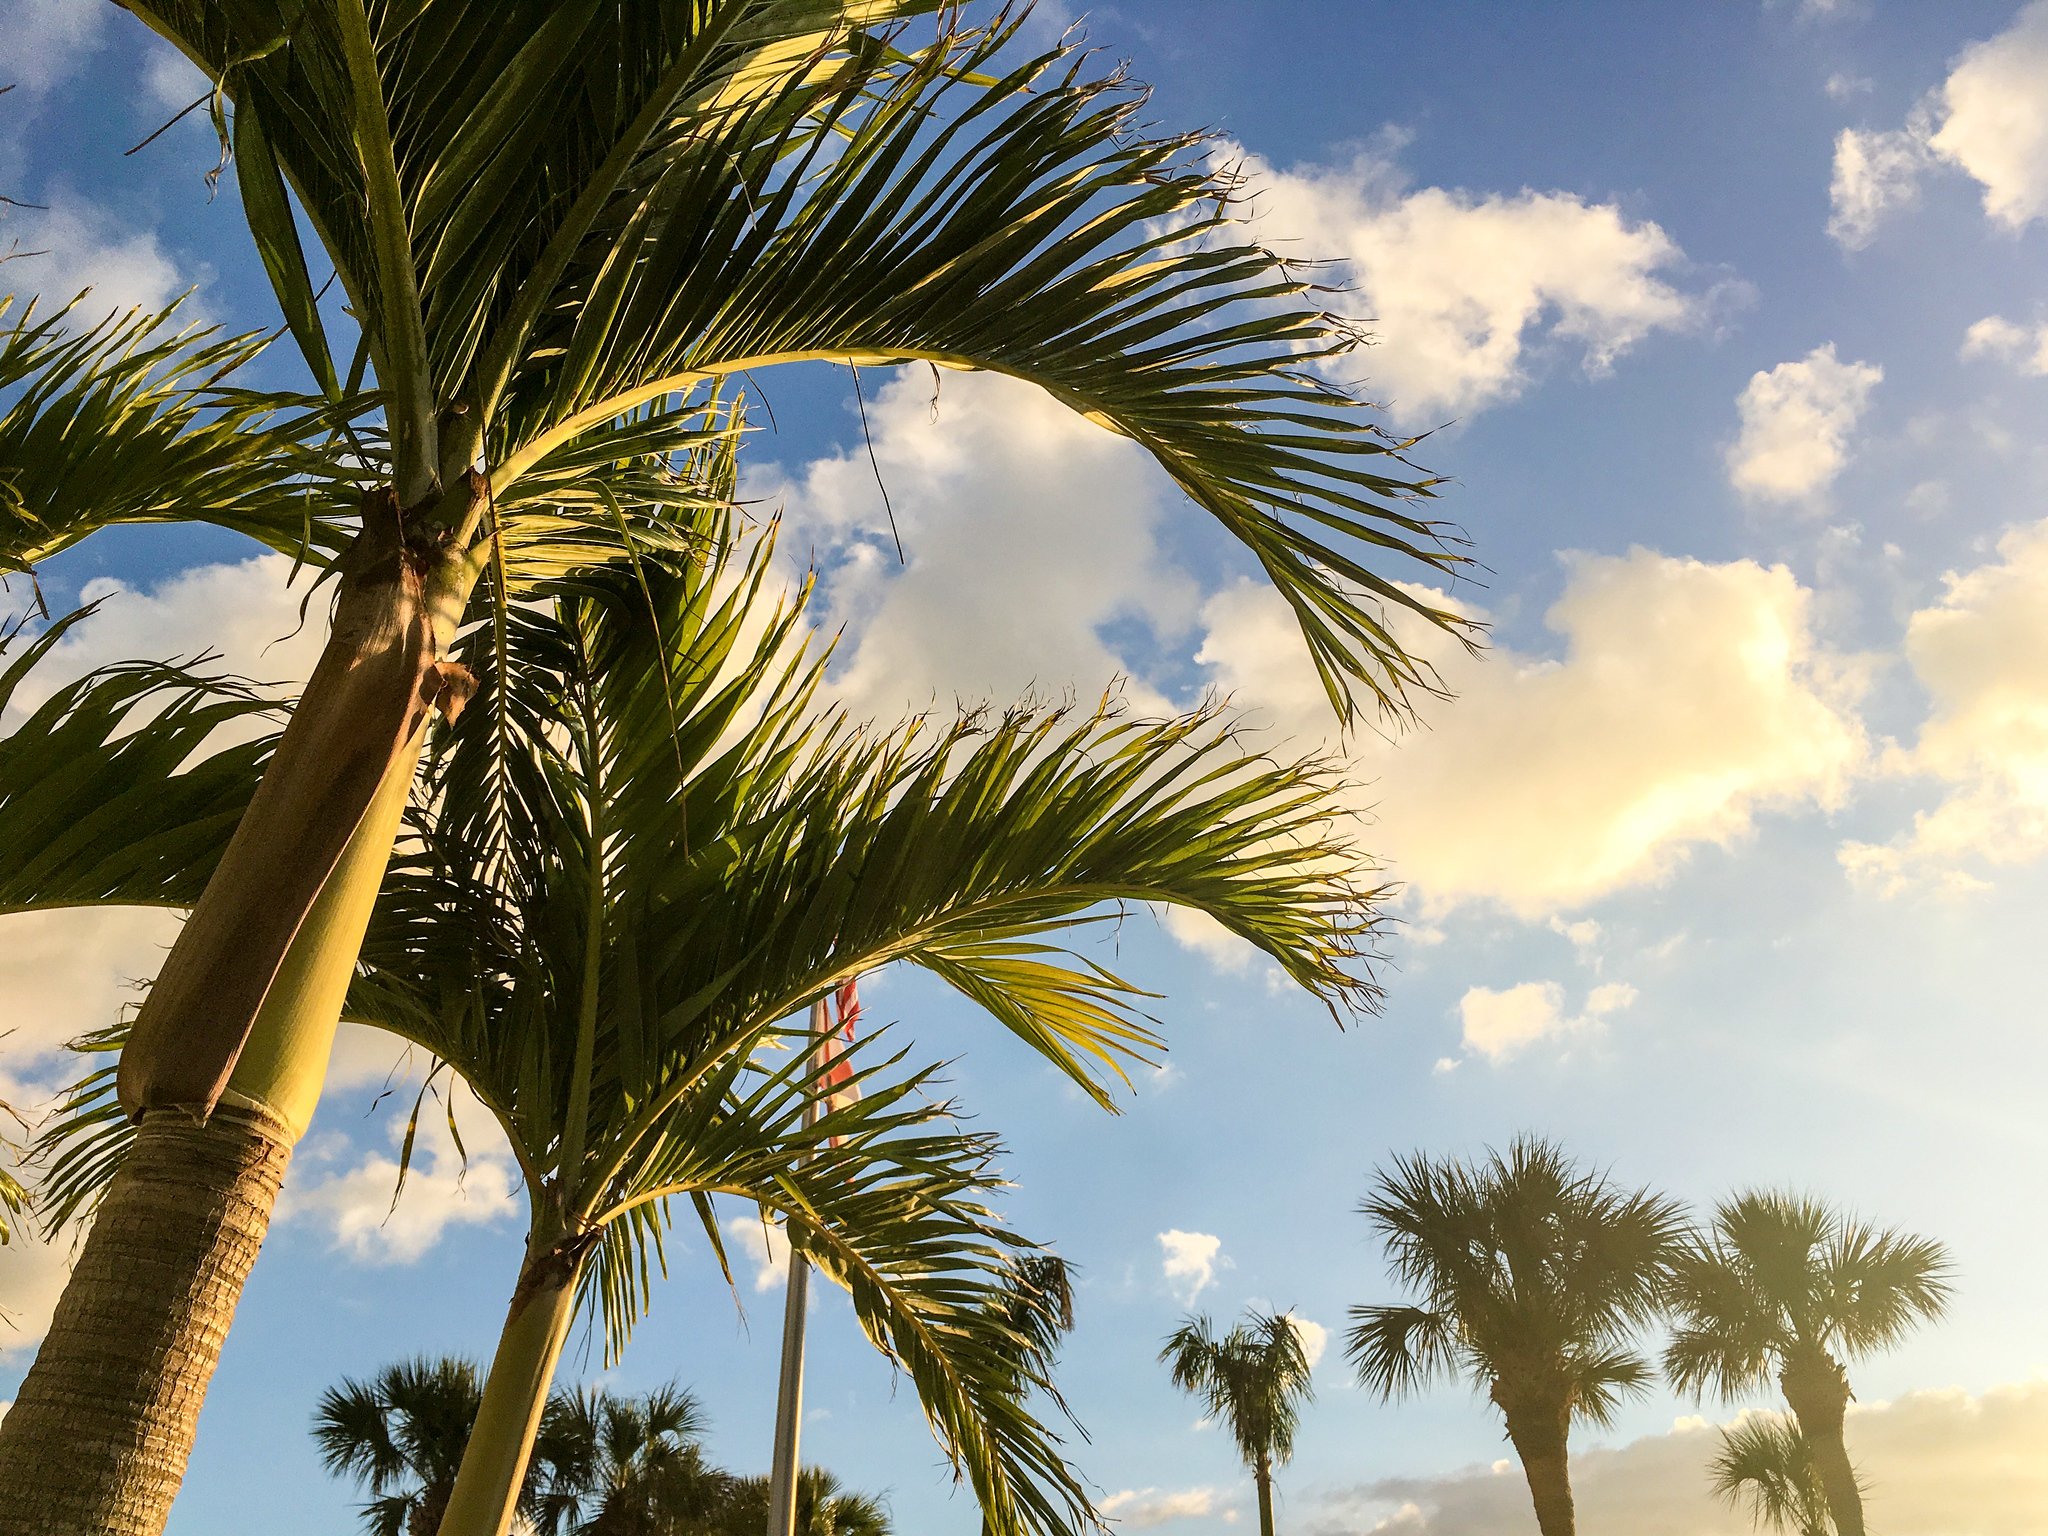 snapping photos of palm trees are another one of the coolest things to do in marco island